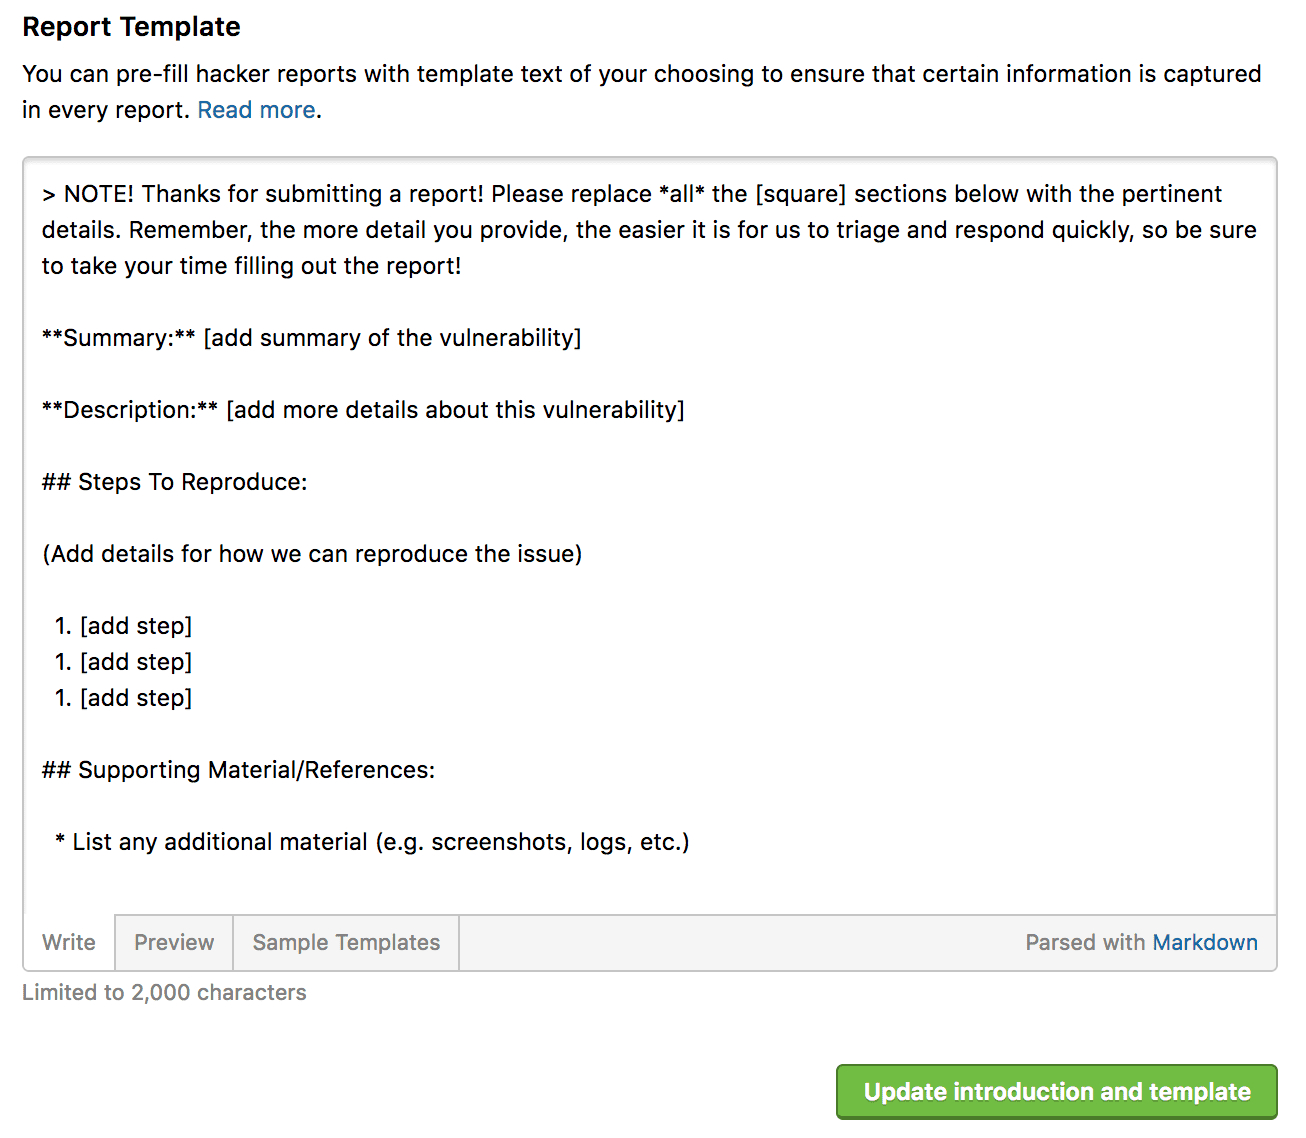 Report Templates  Hackerone Platform Documentation Inside Template On How To Write A Report